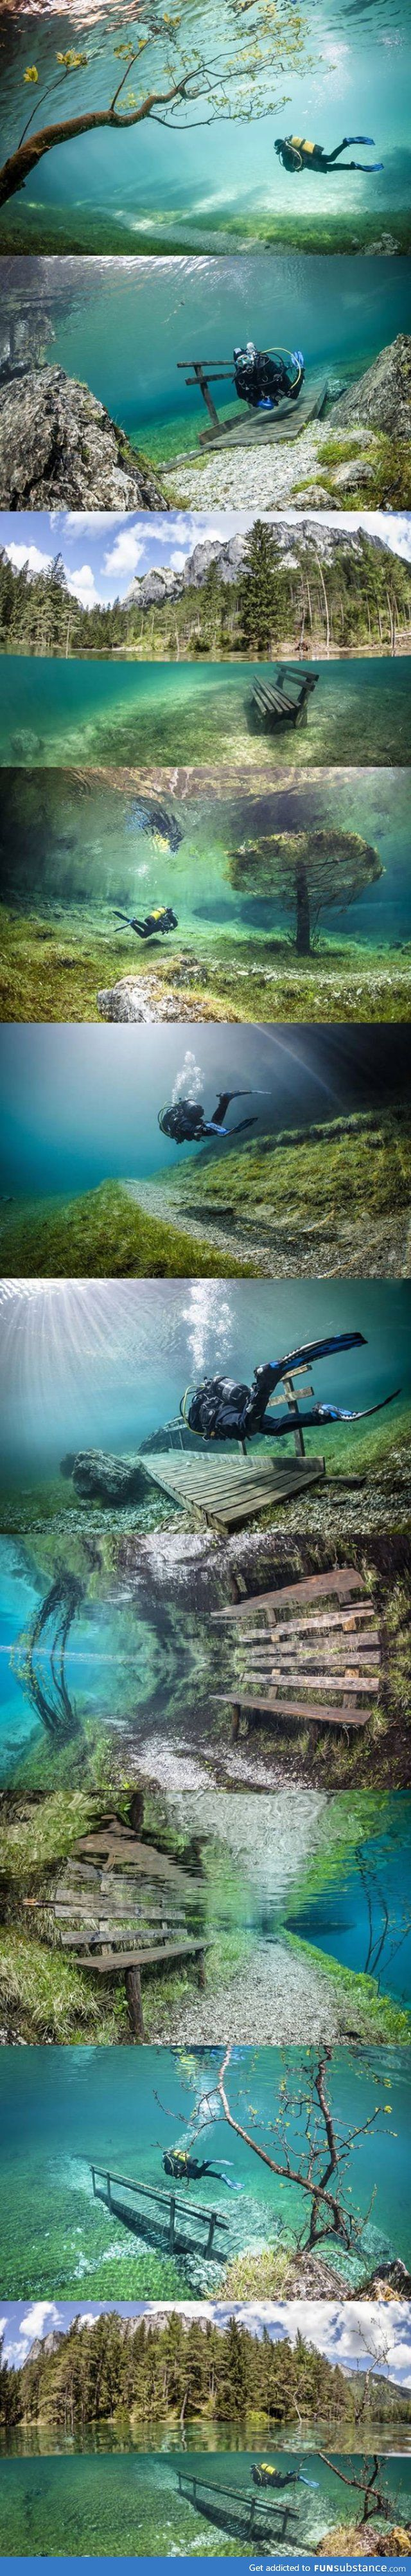 Underwater park in Austria. Snow from Hochschwab Moutain melts and the green lake is flooded.